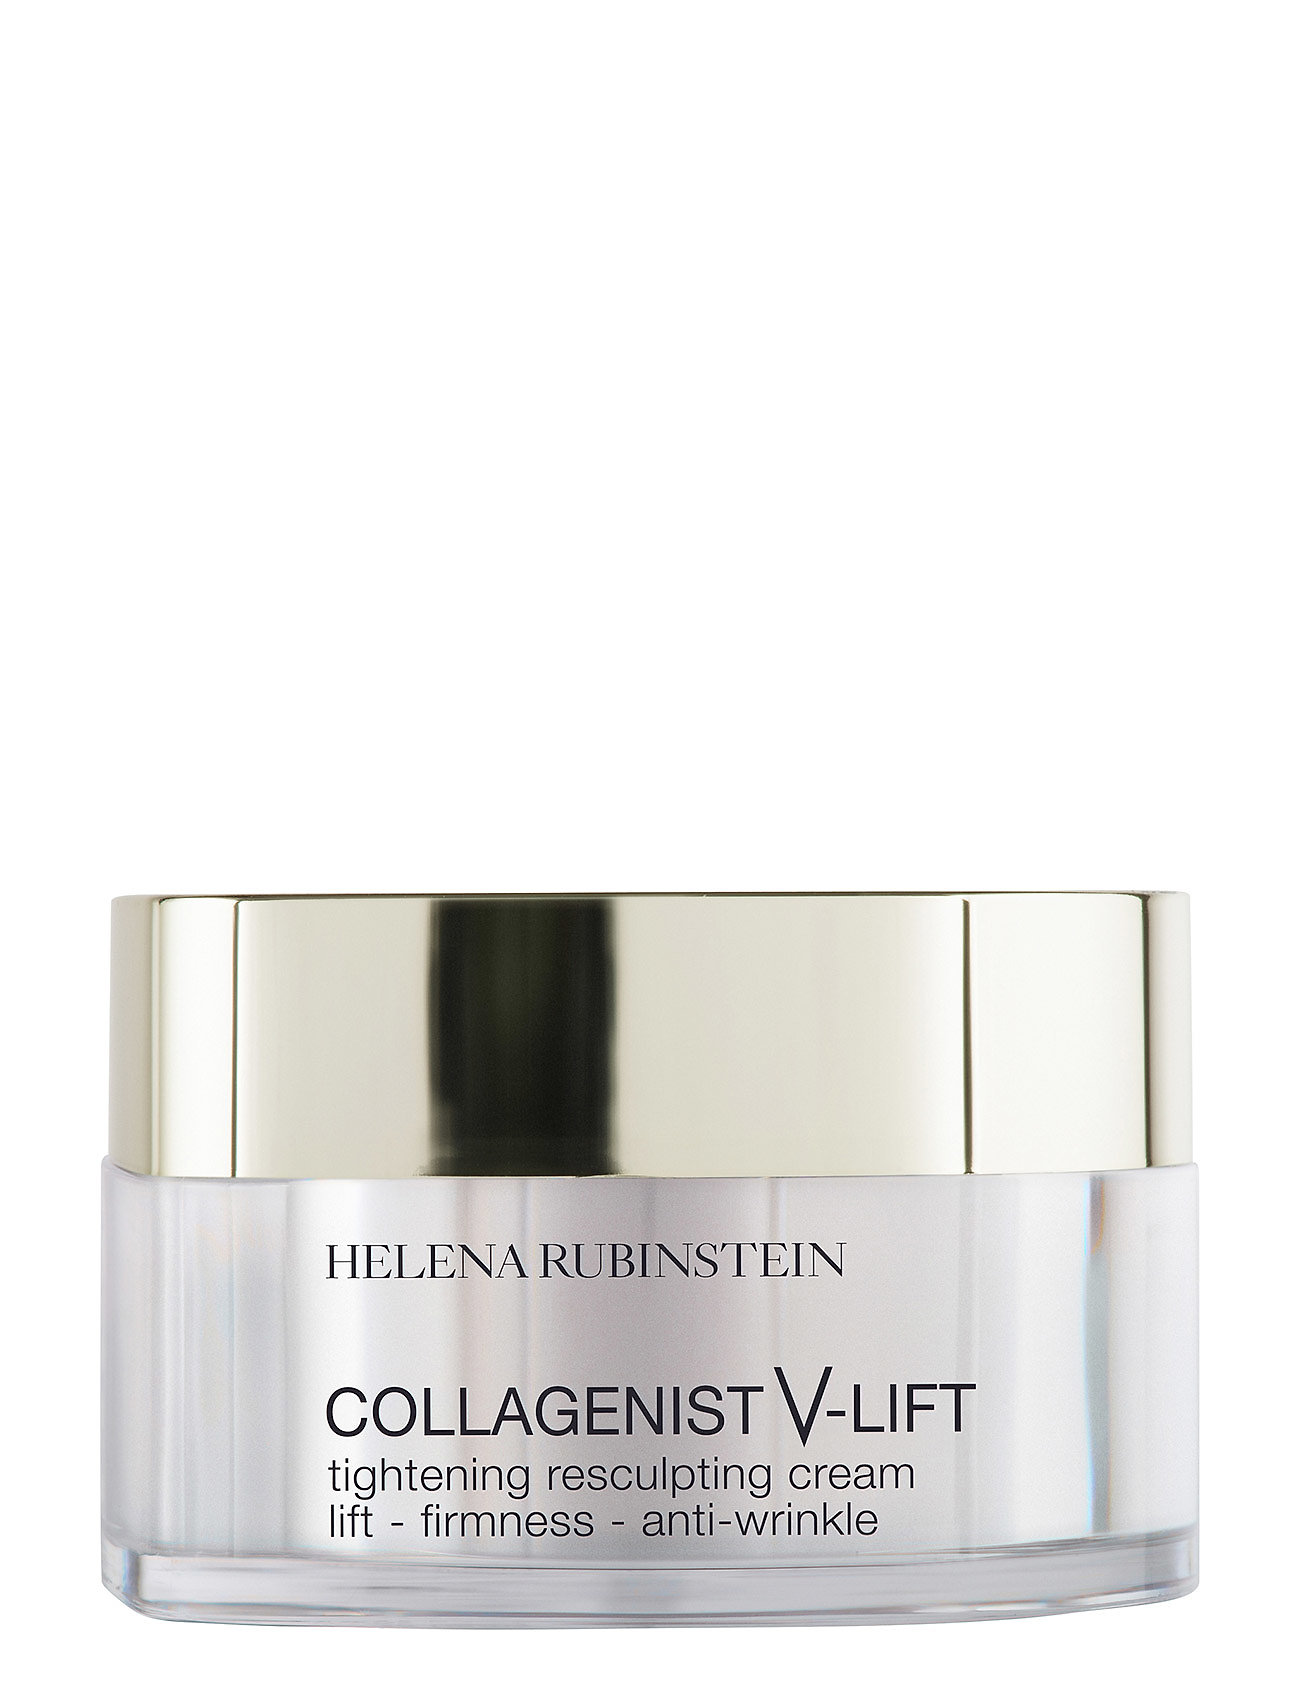 helena rubinstein – Collagenist v-lift day cream normal skin 50 ml fra boozt.com dk